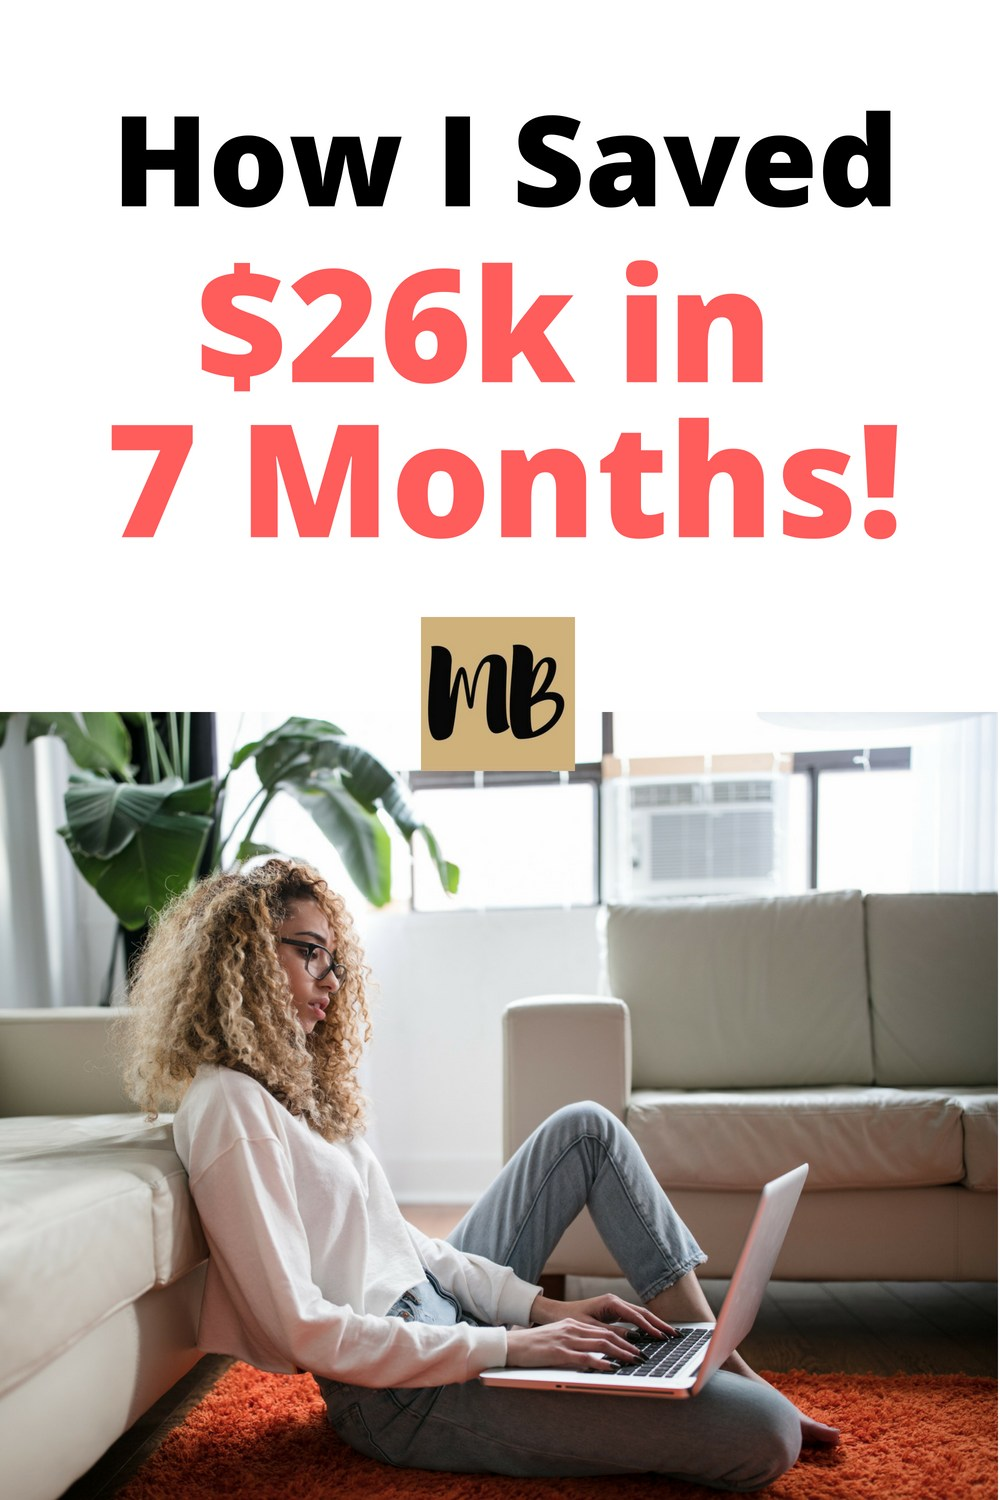 How to Save $26,000 in 7 Months